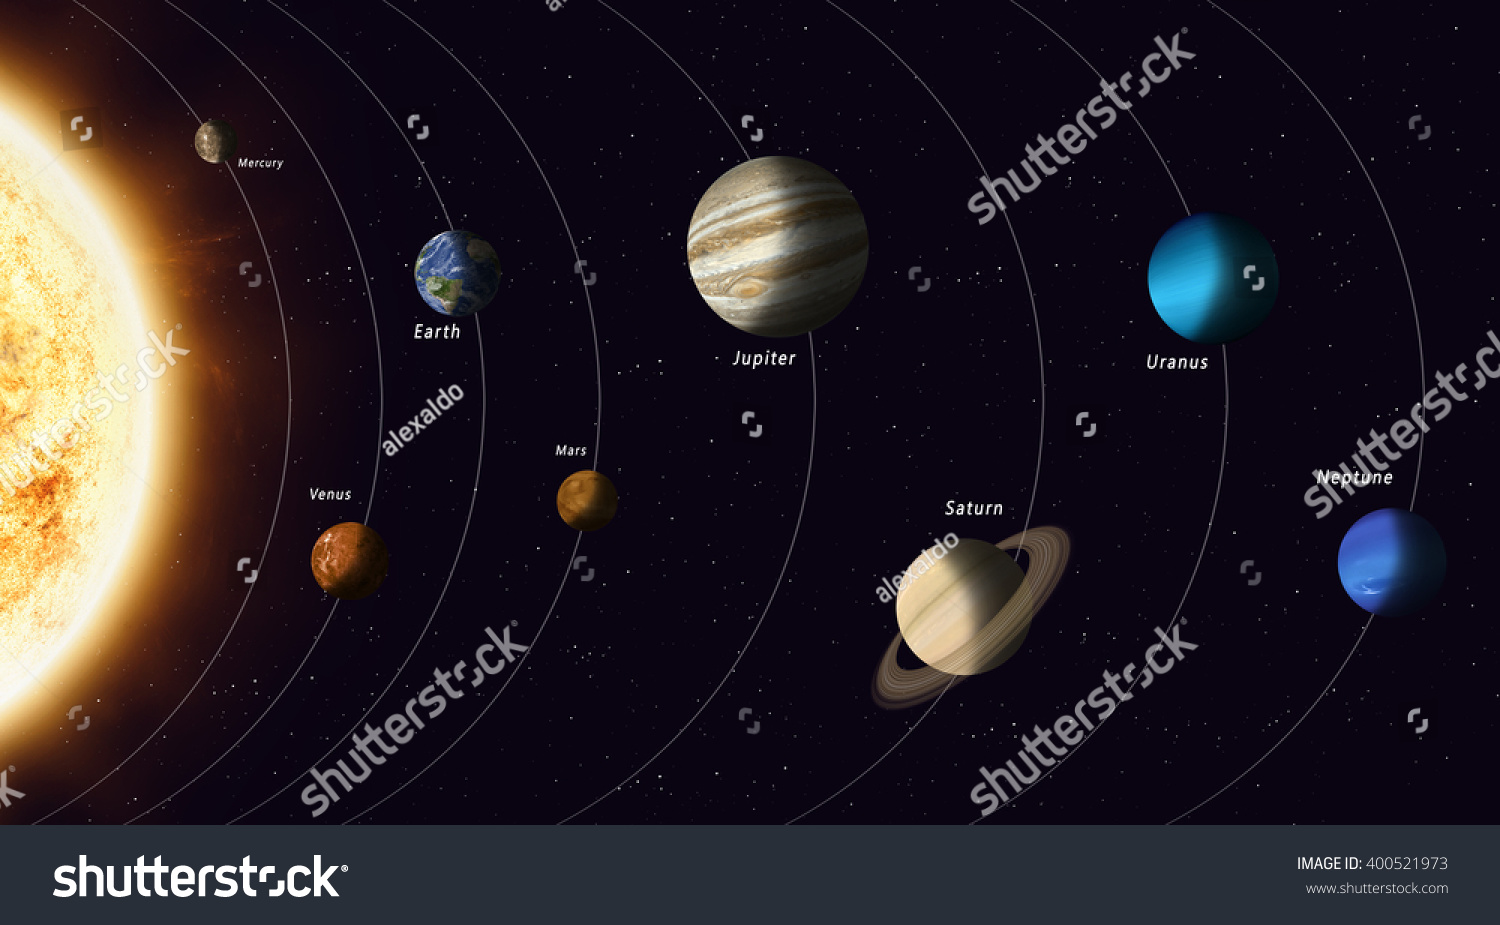 all the planets in solar system names - photo #39